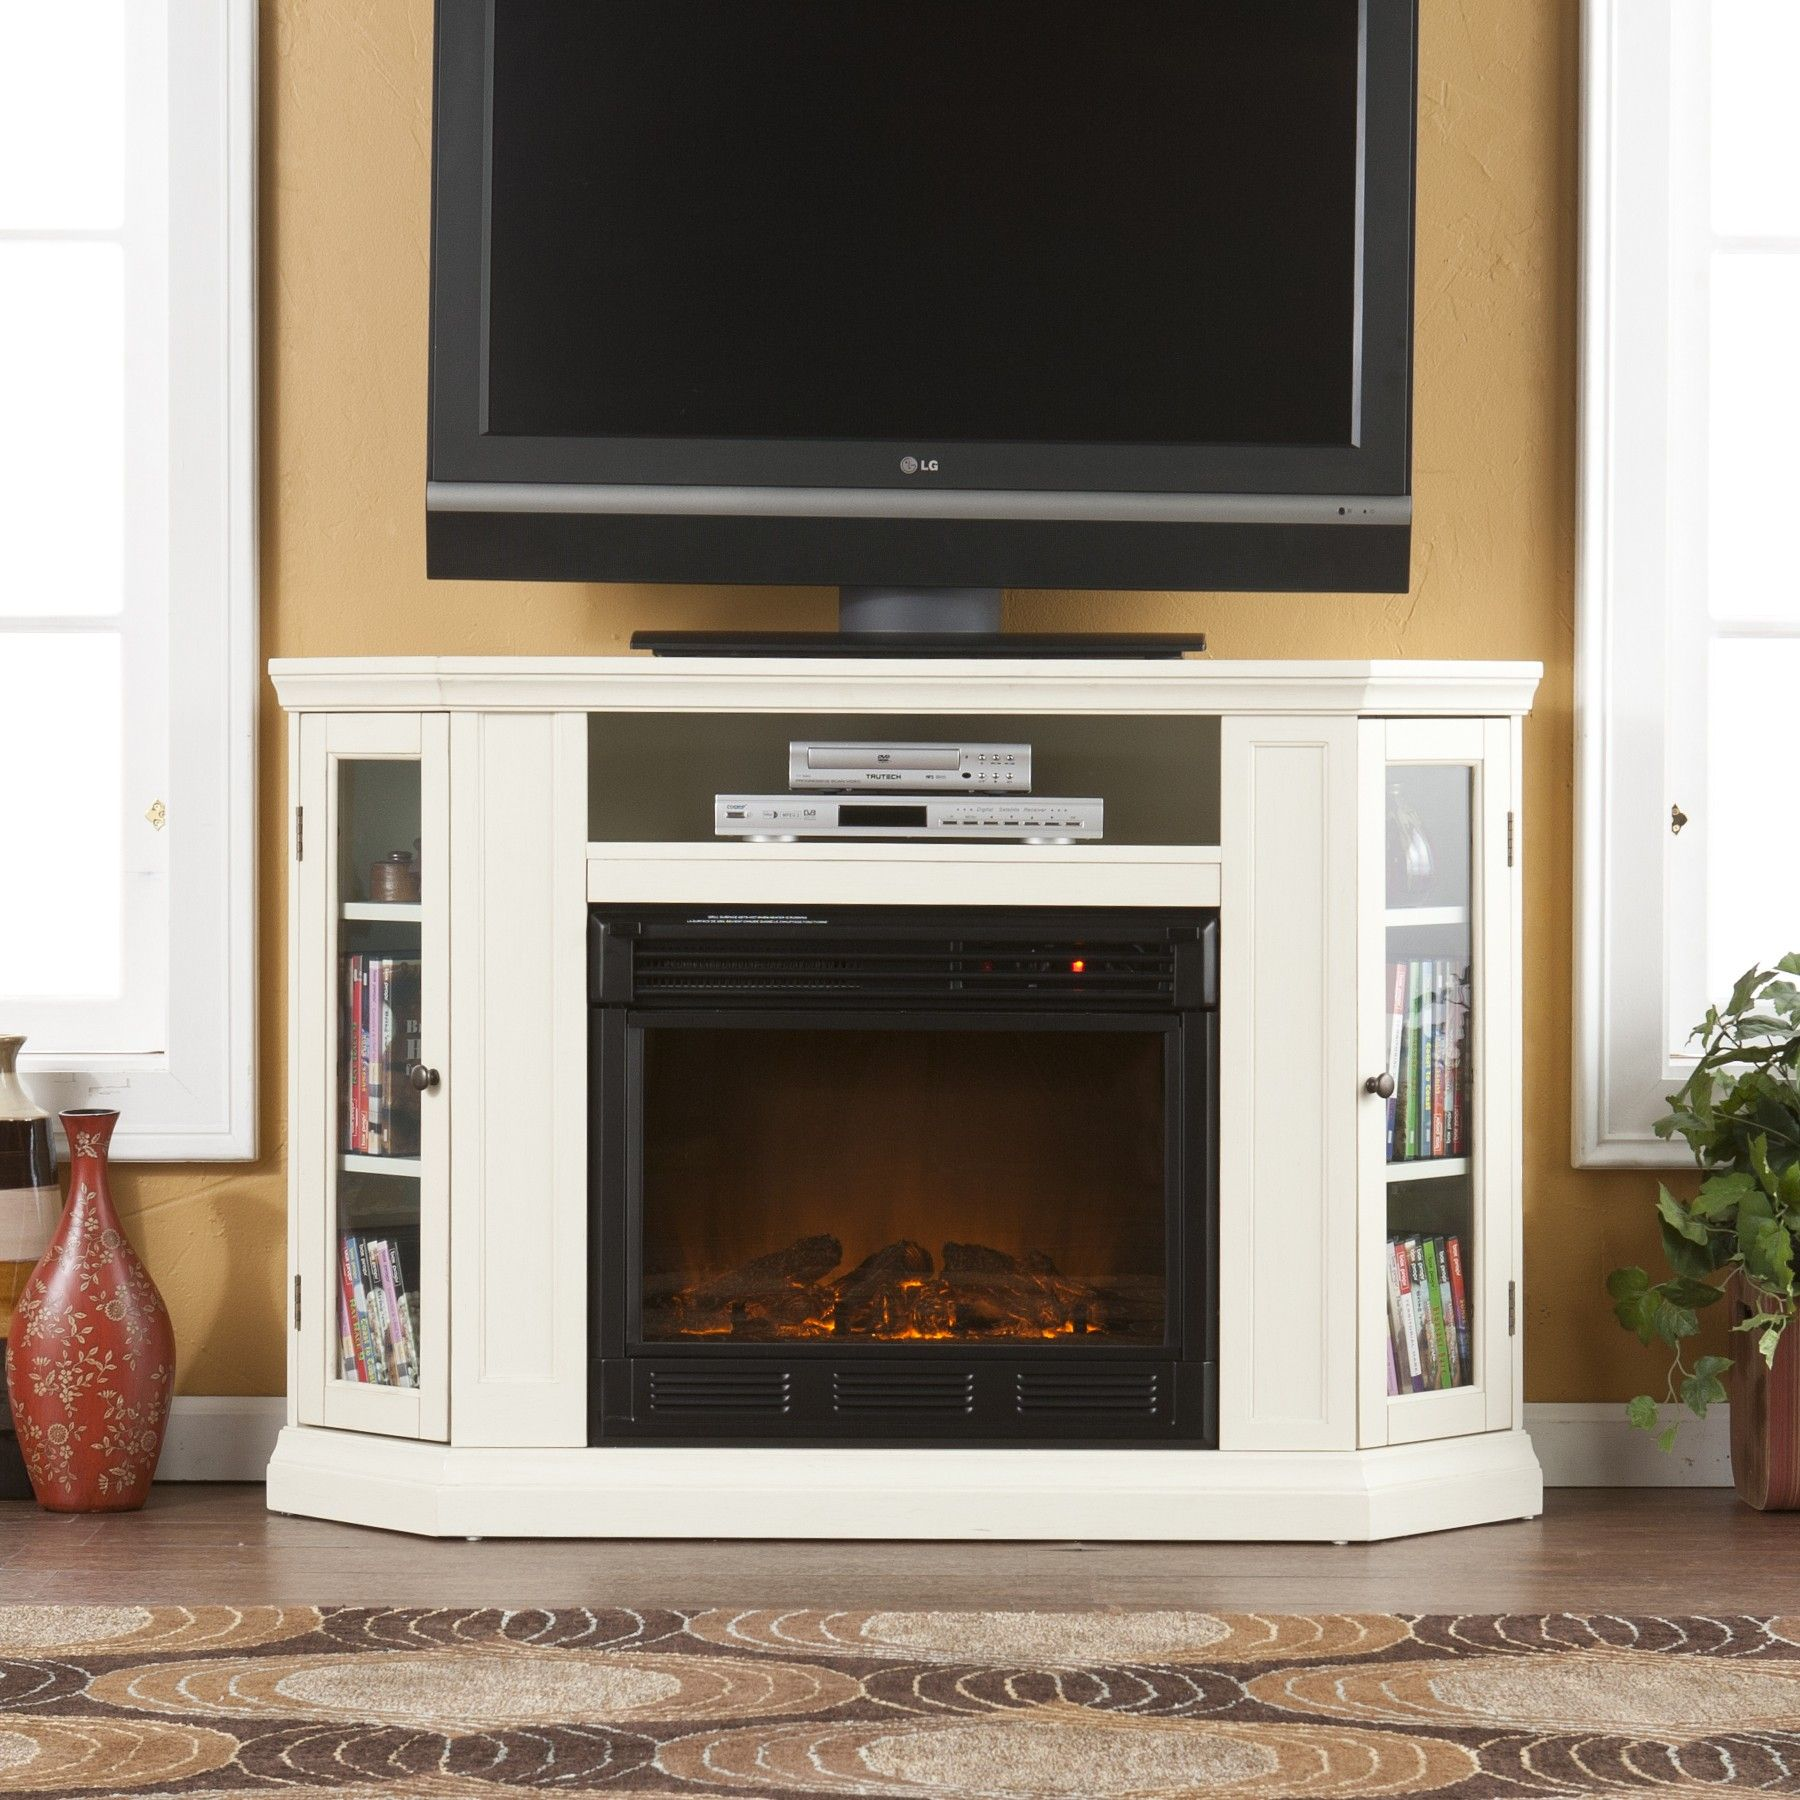 Pretty White Wooden Fireplace Mantle With Storage Under Large LCD Between White Windows Glass Frames Also Gray Geometric Rugs In Home Media Room Ideas